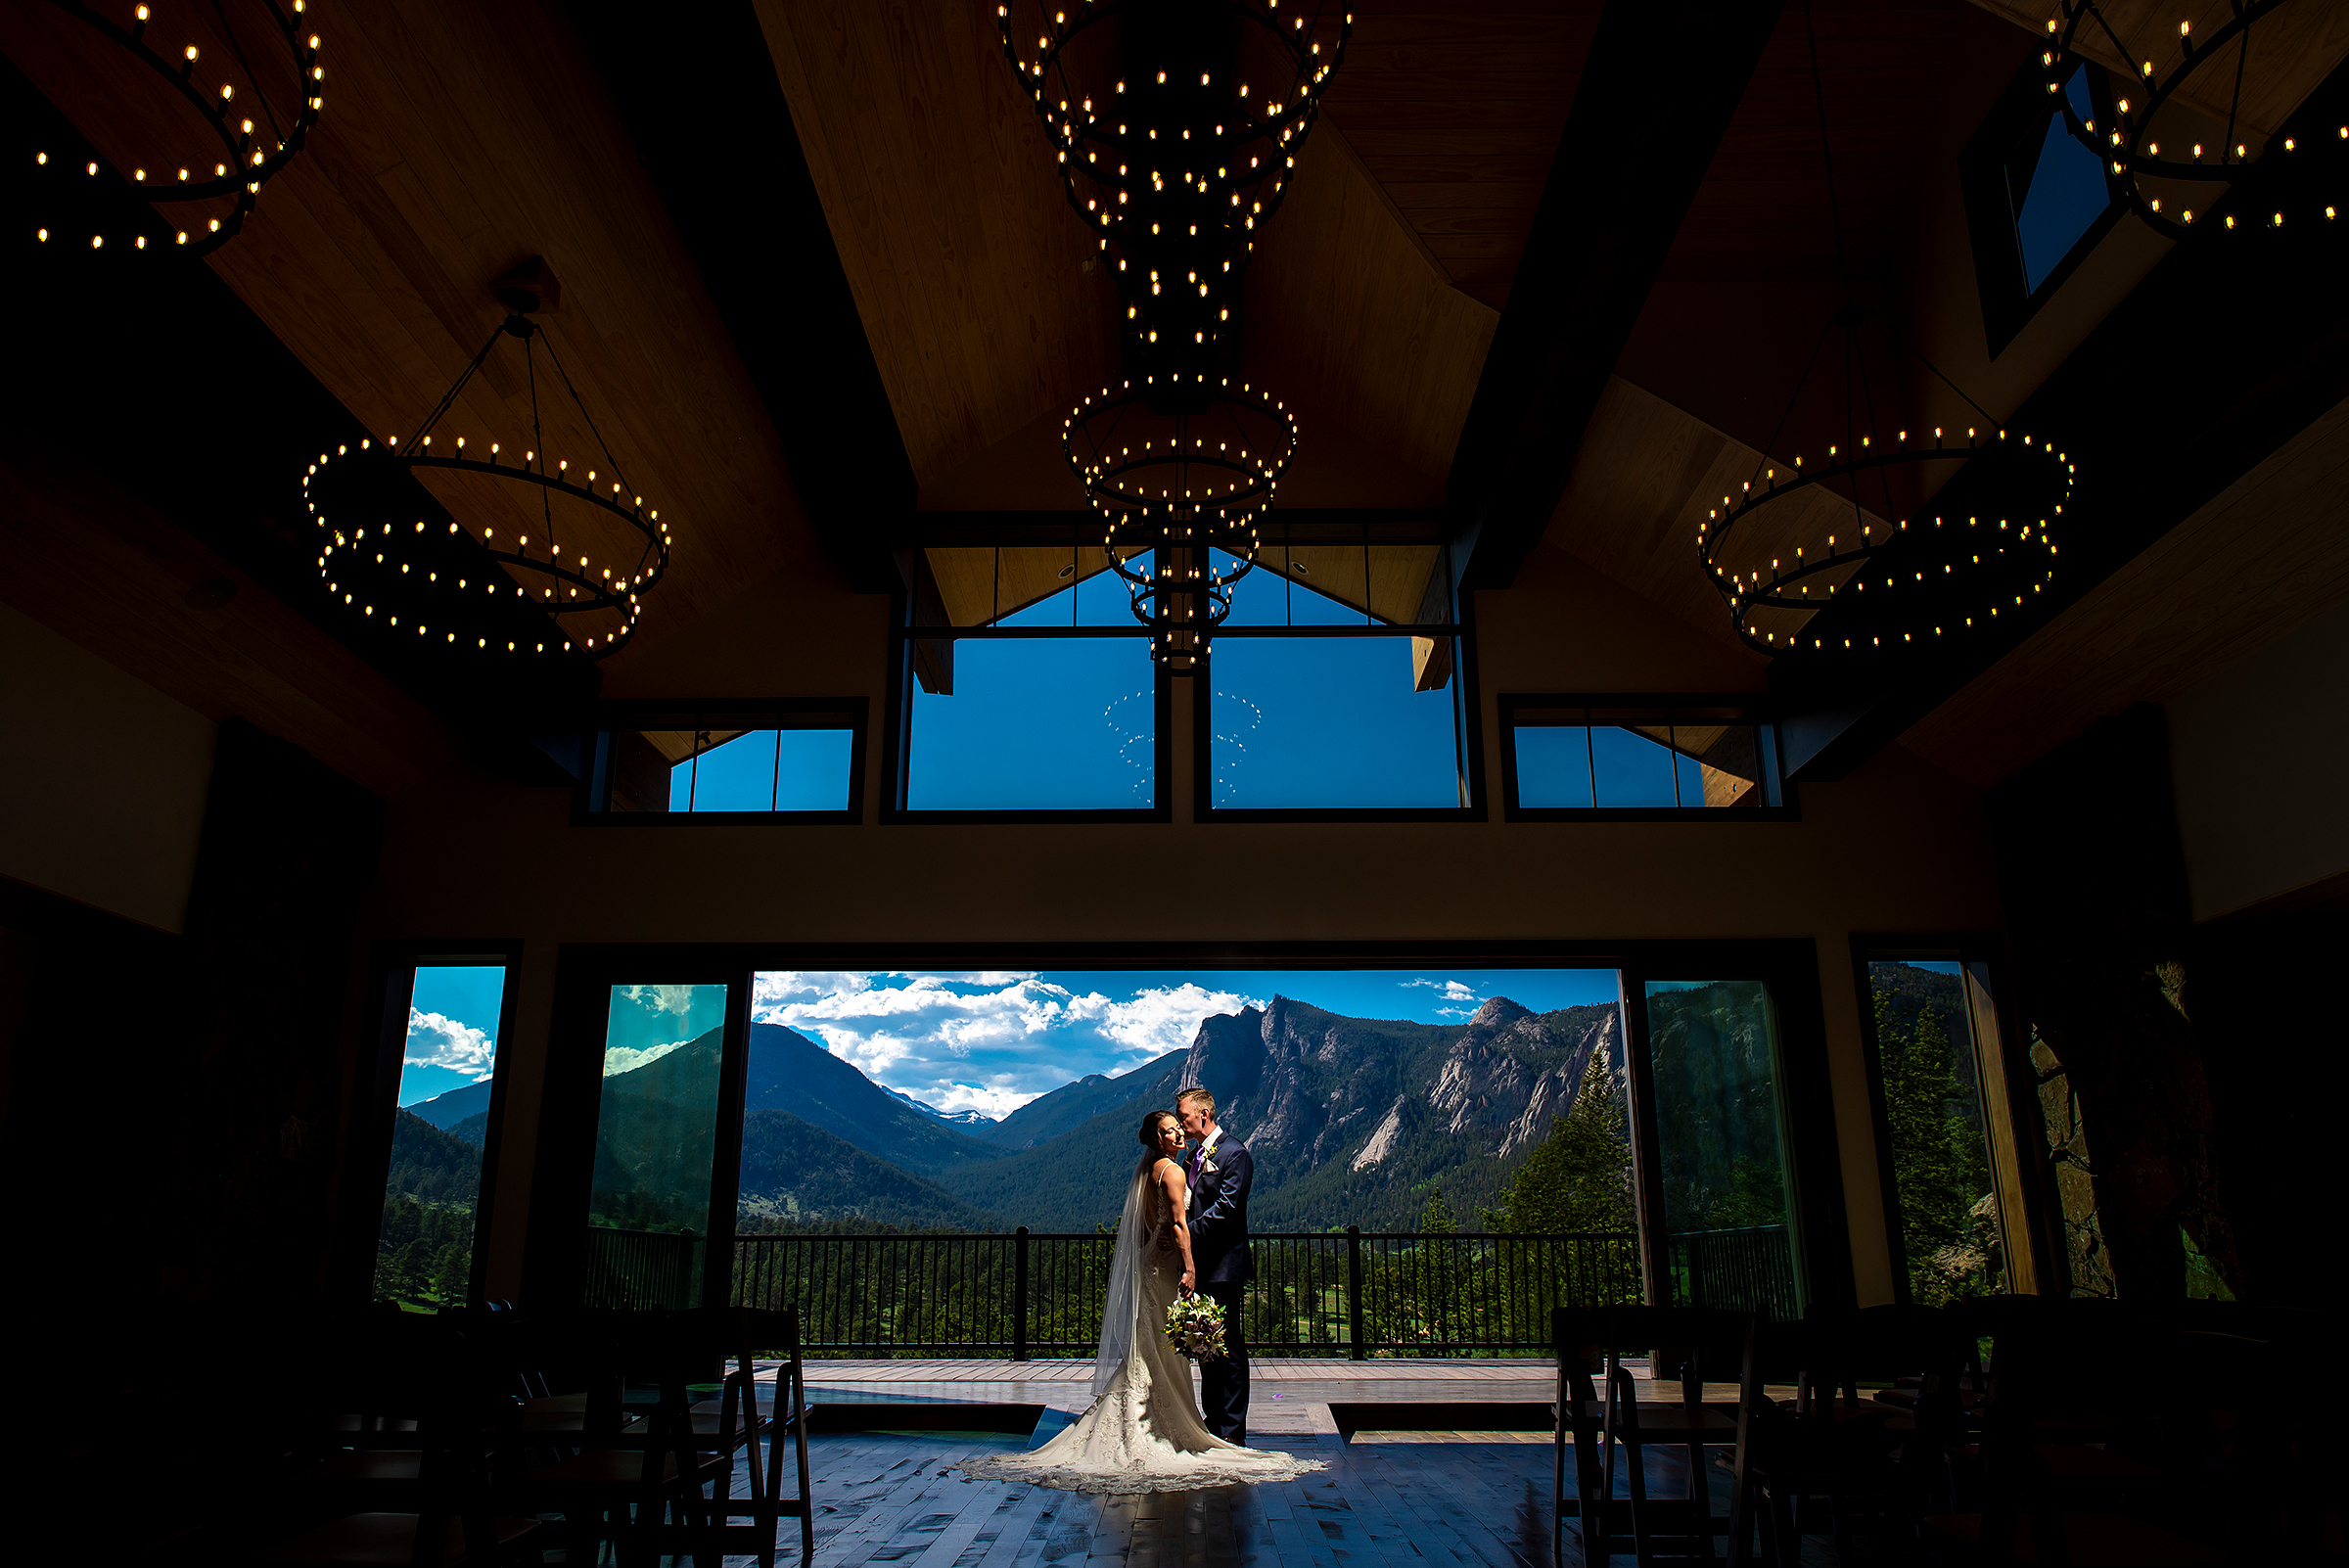 mountain-venue-with-couple-framed-by-large-window-with-epic-view-j-la-plante-photo